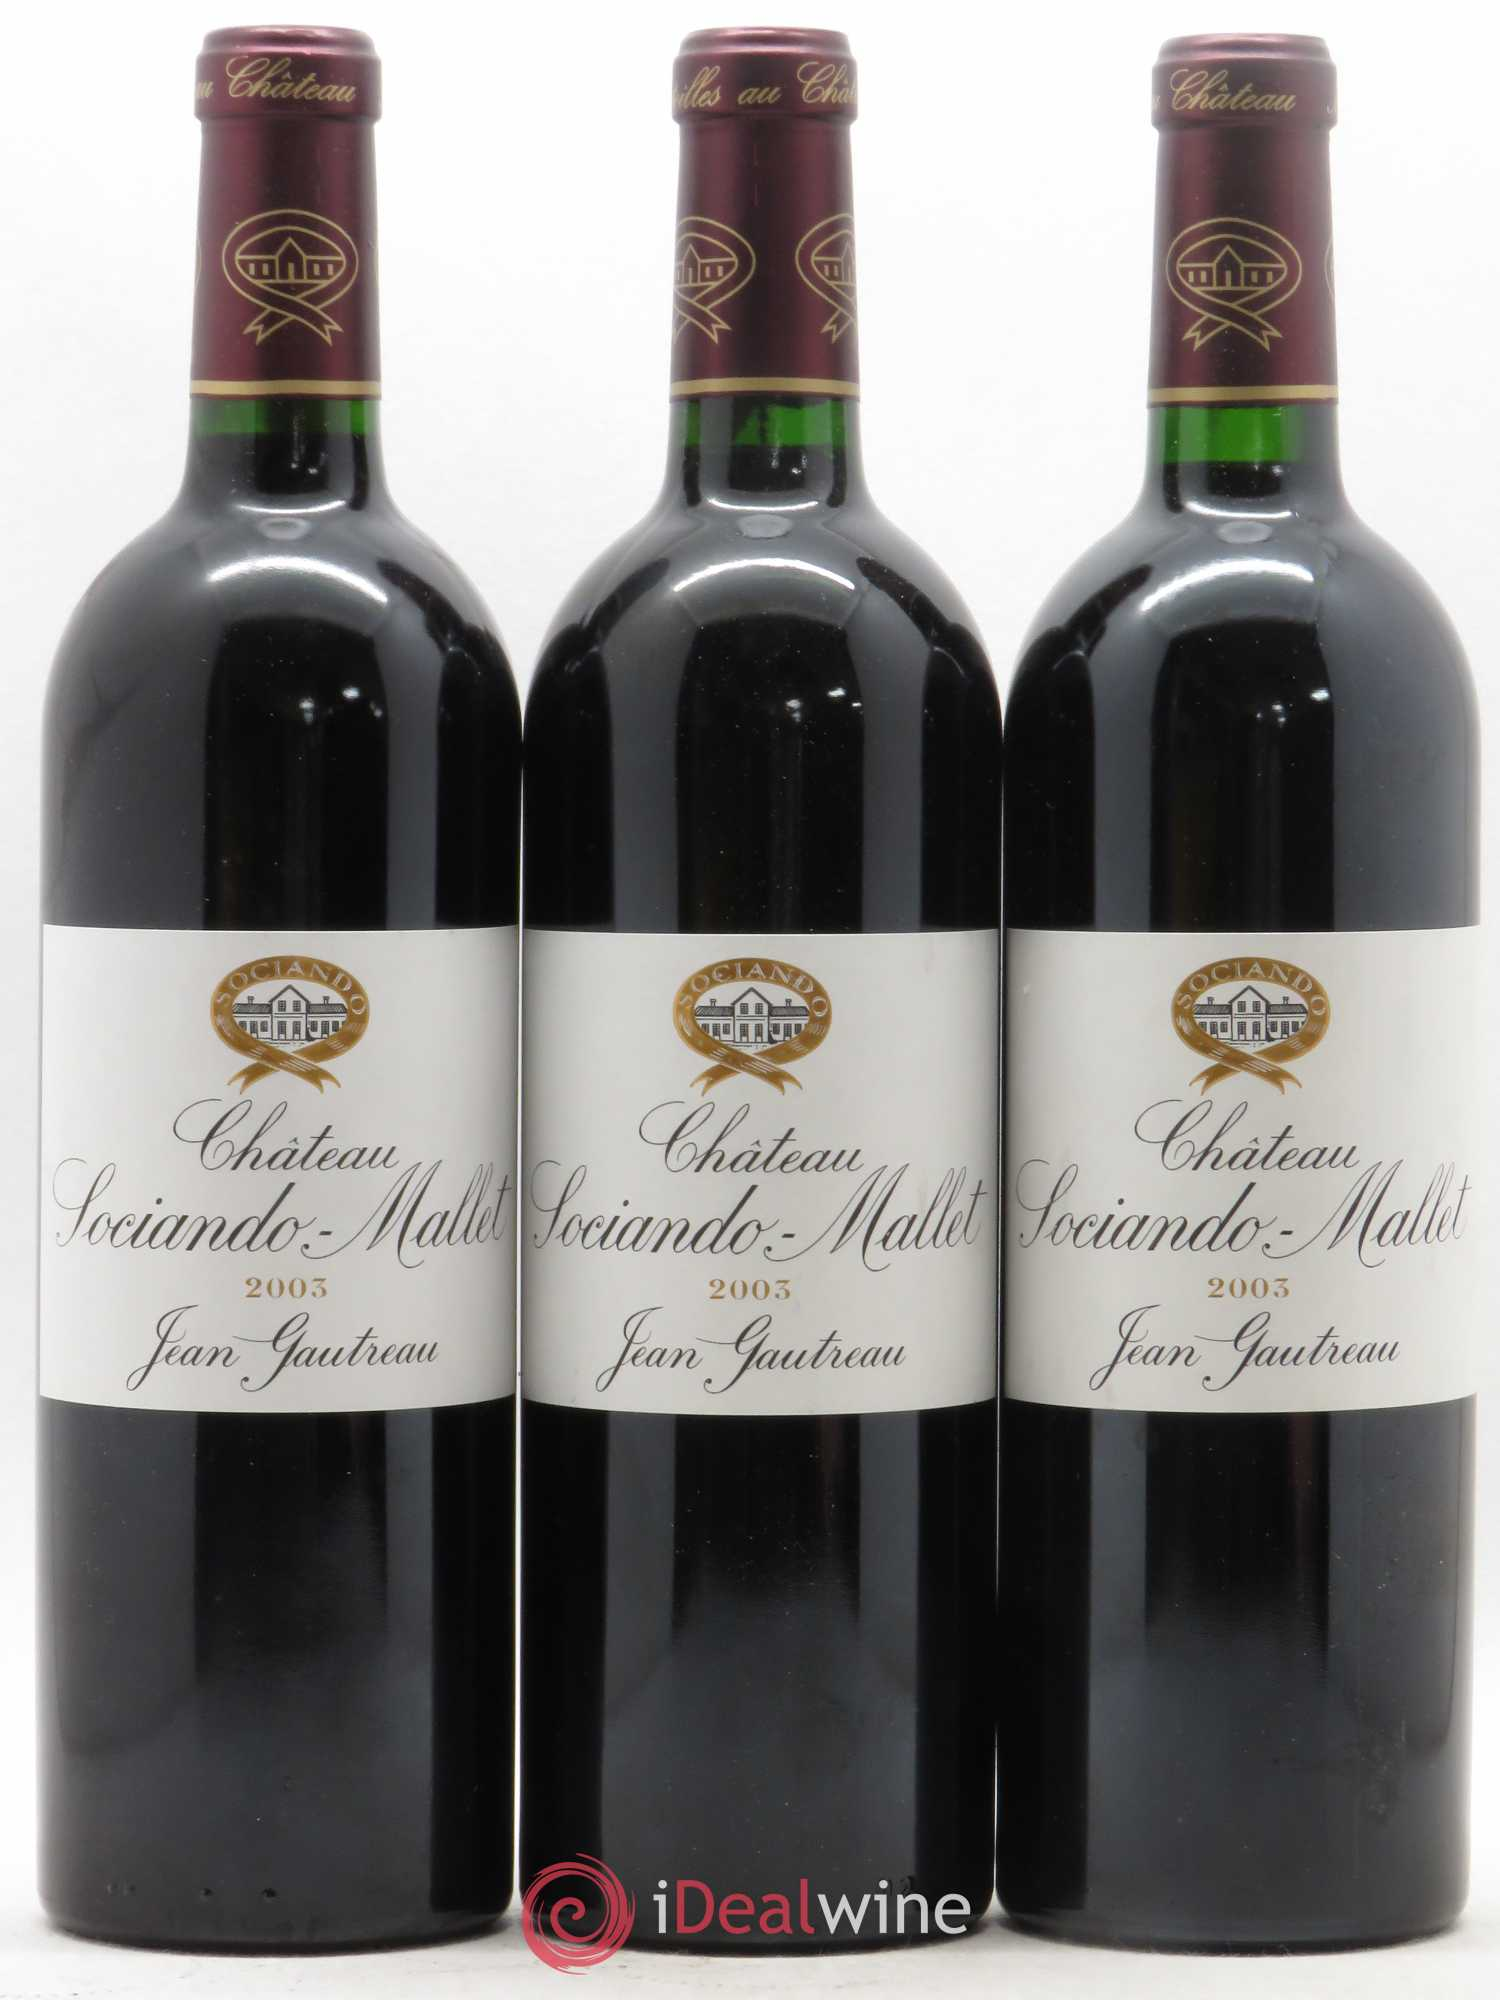 Château Sociando Mallet  2003 - Lot of 3 Bottles